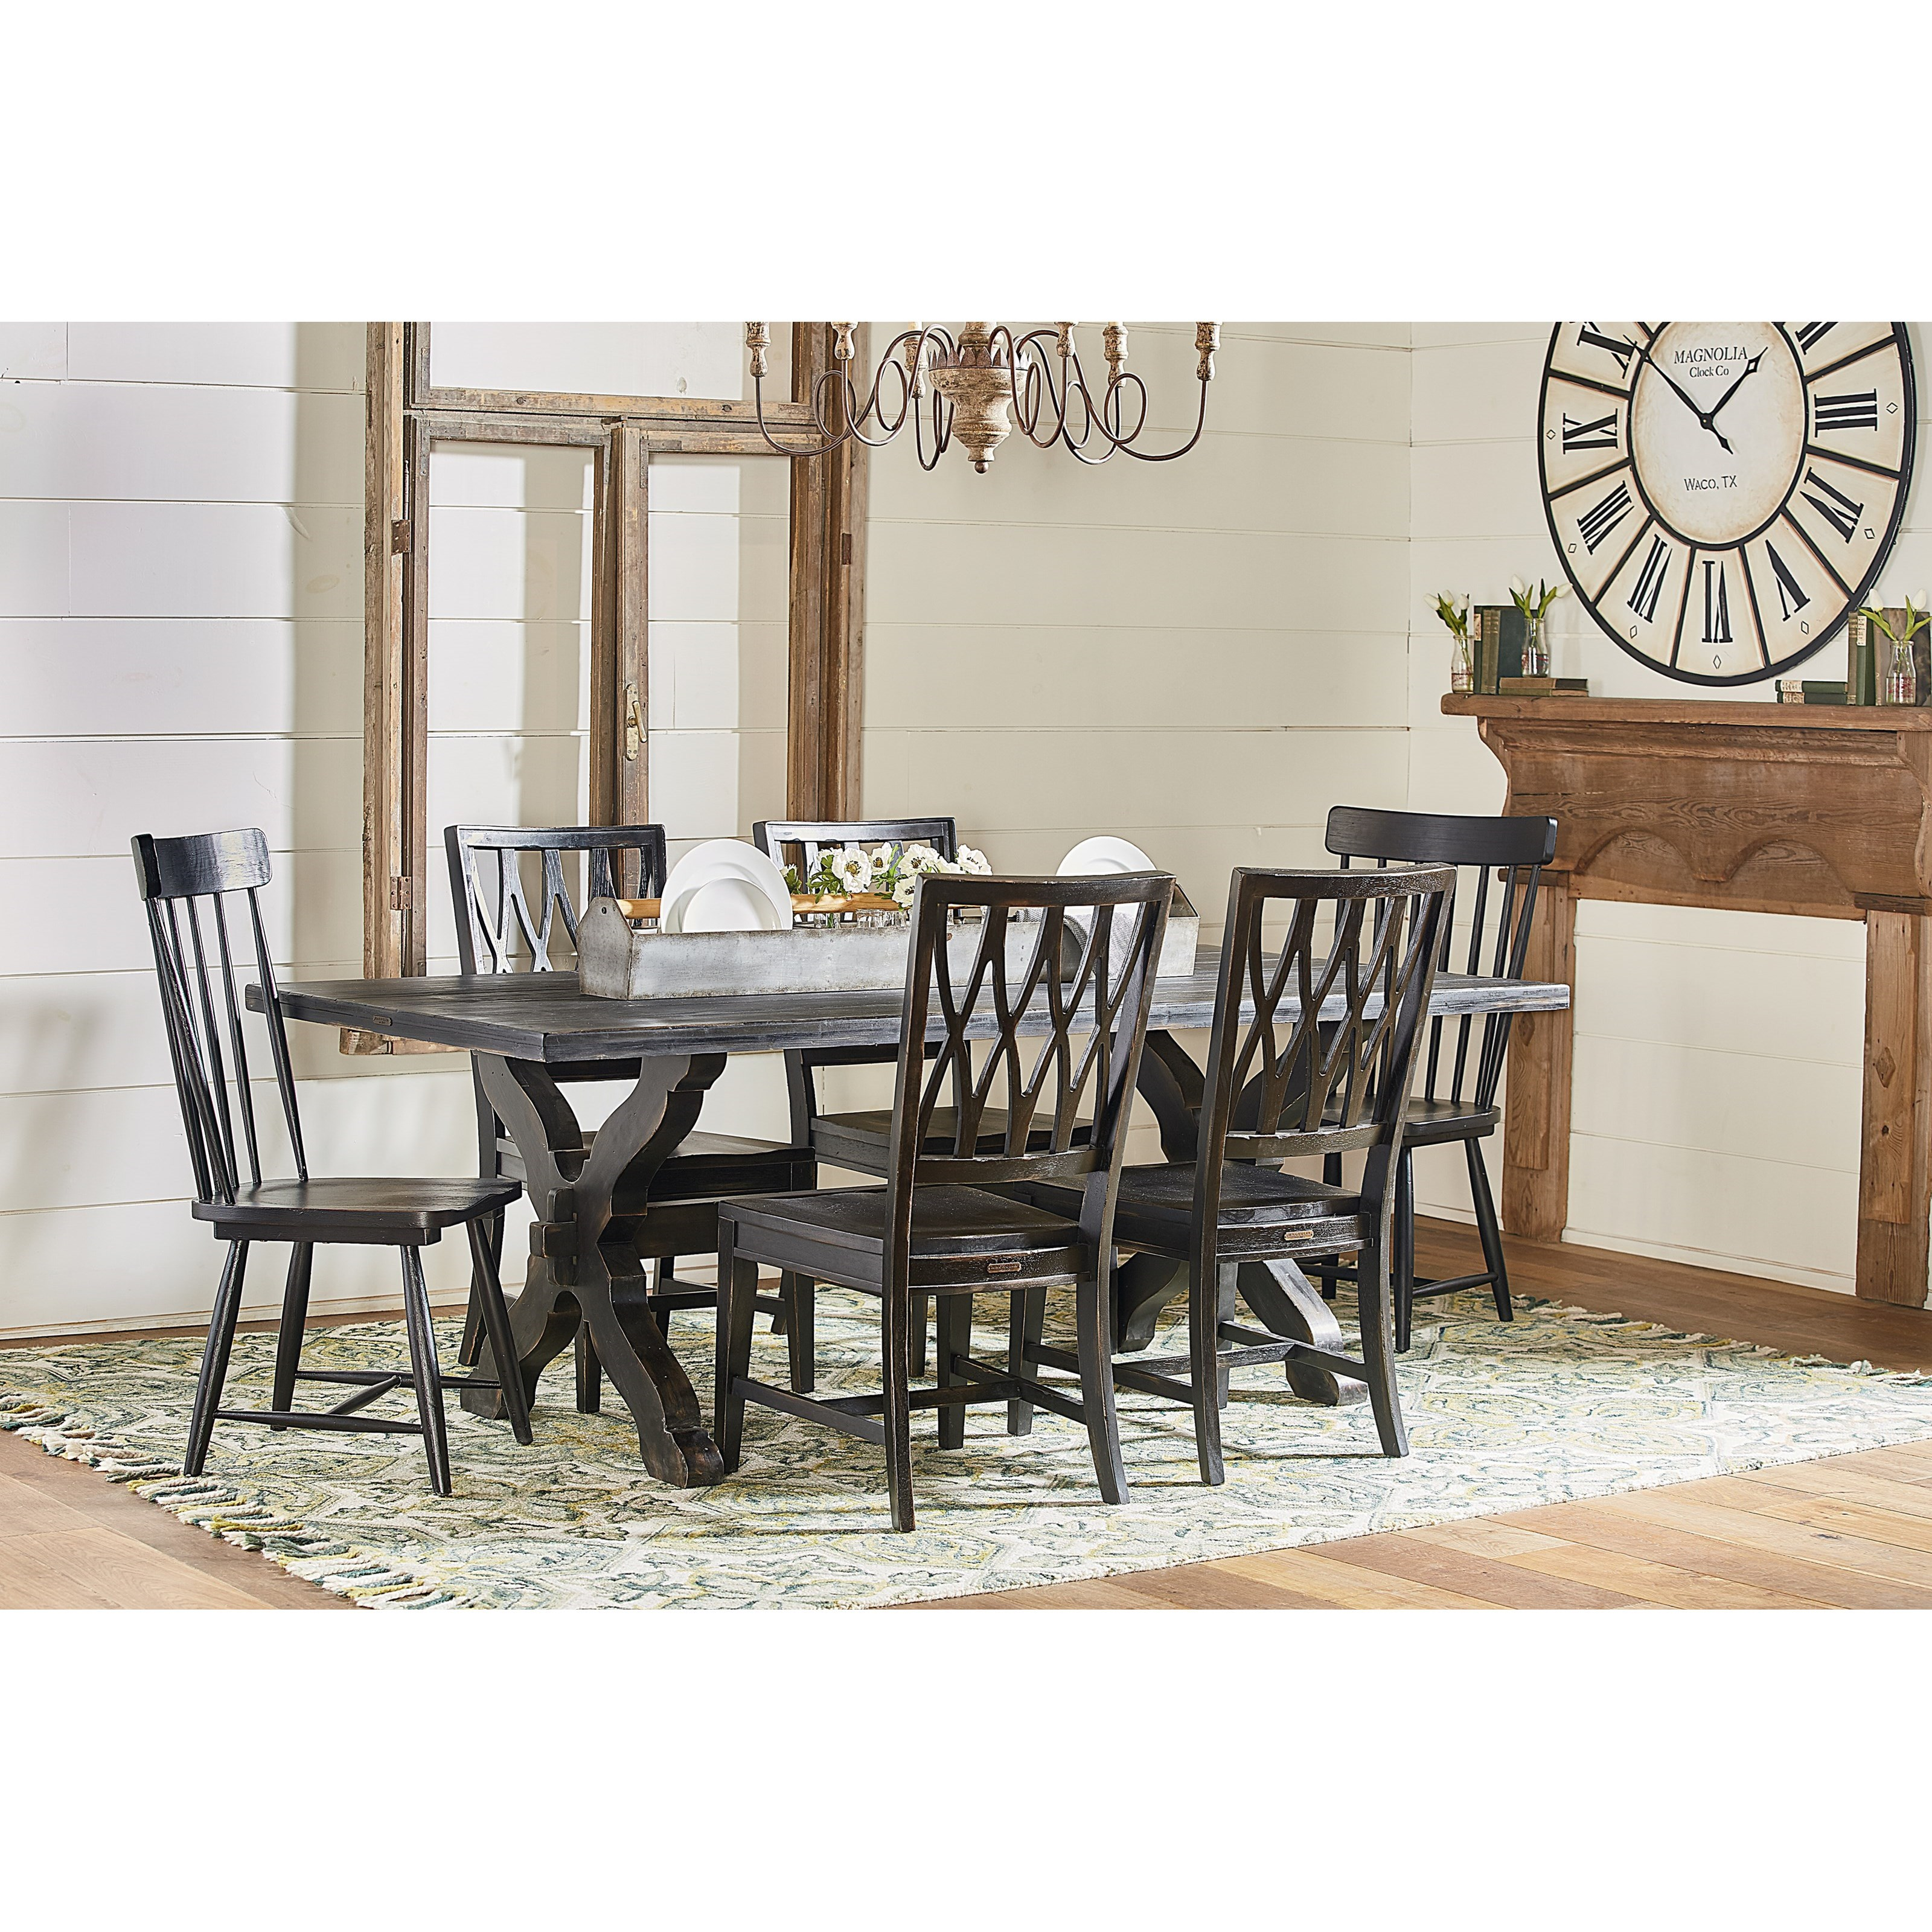 Magnolia Home By Joanna Gaines Primitive Sawbuck Dining Table Set Great Ame